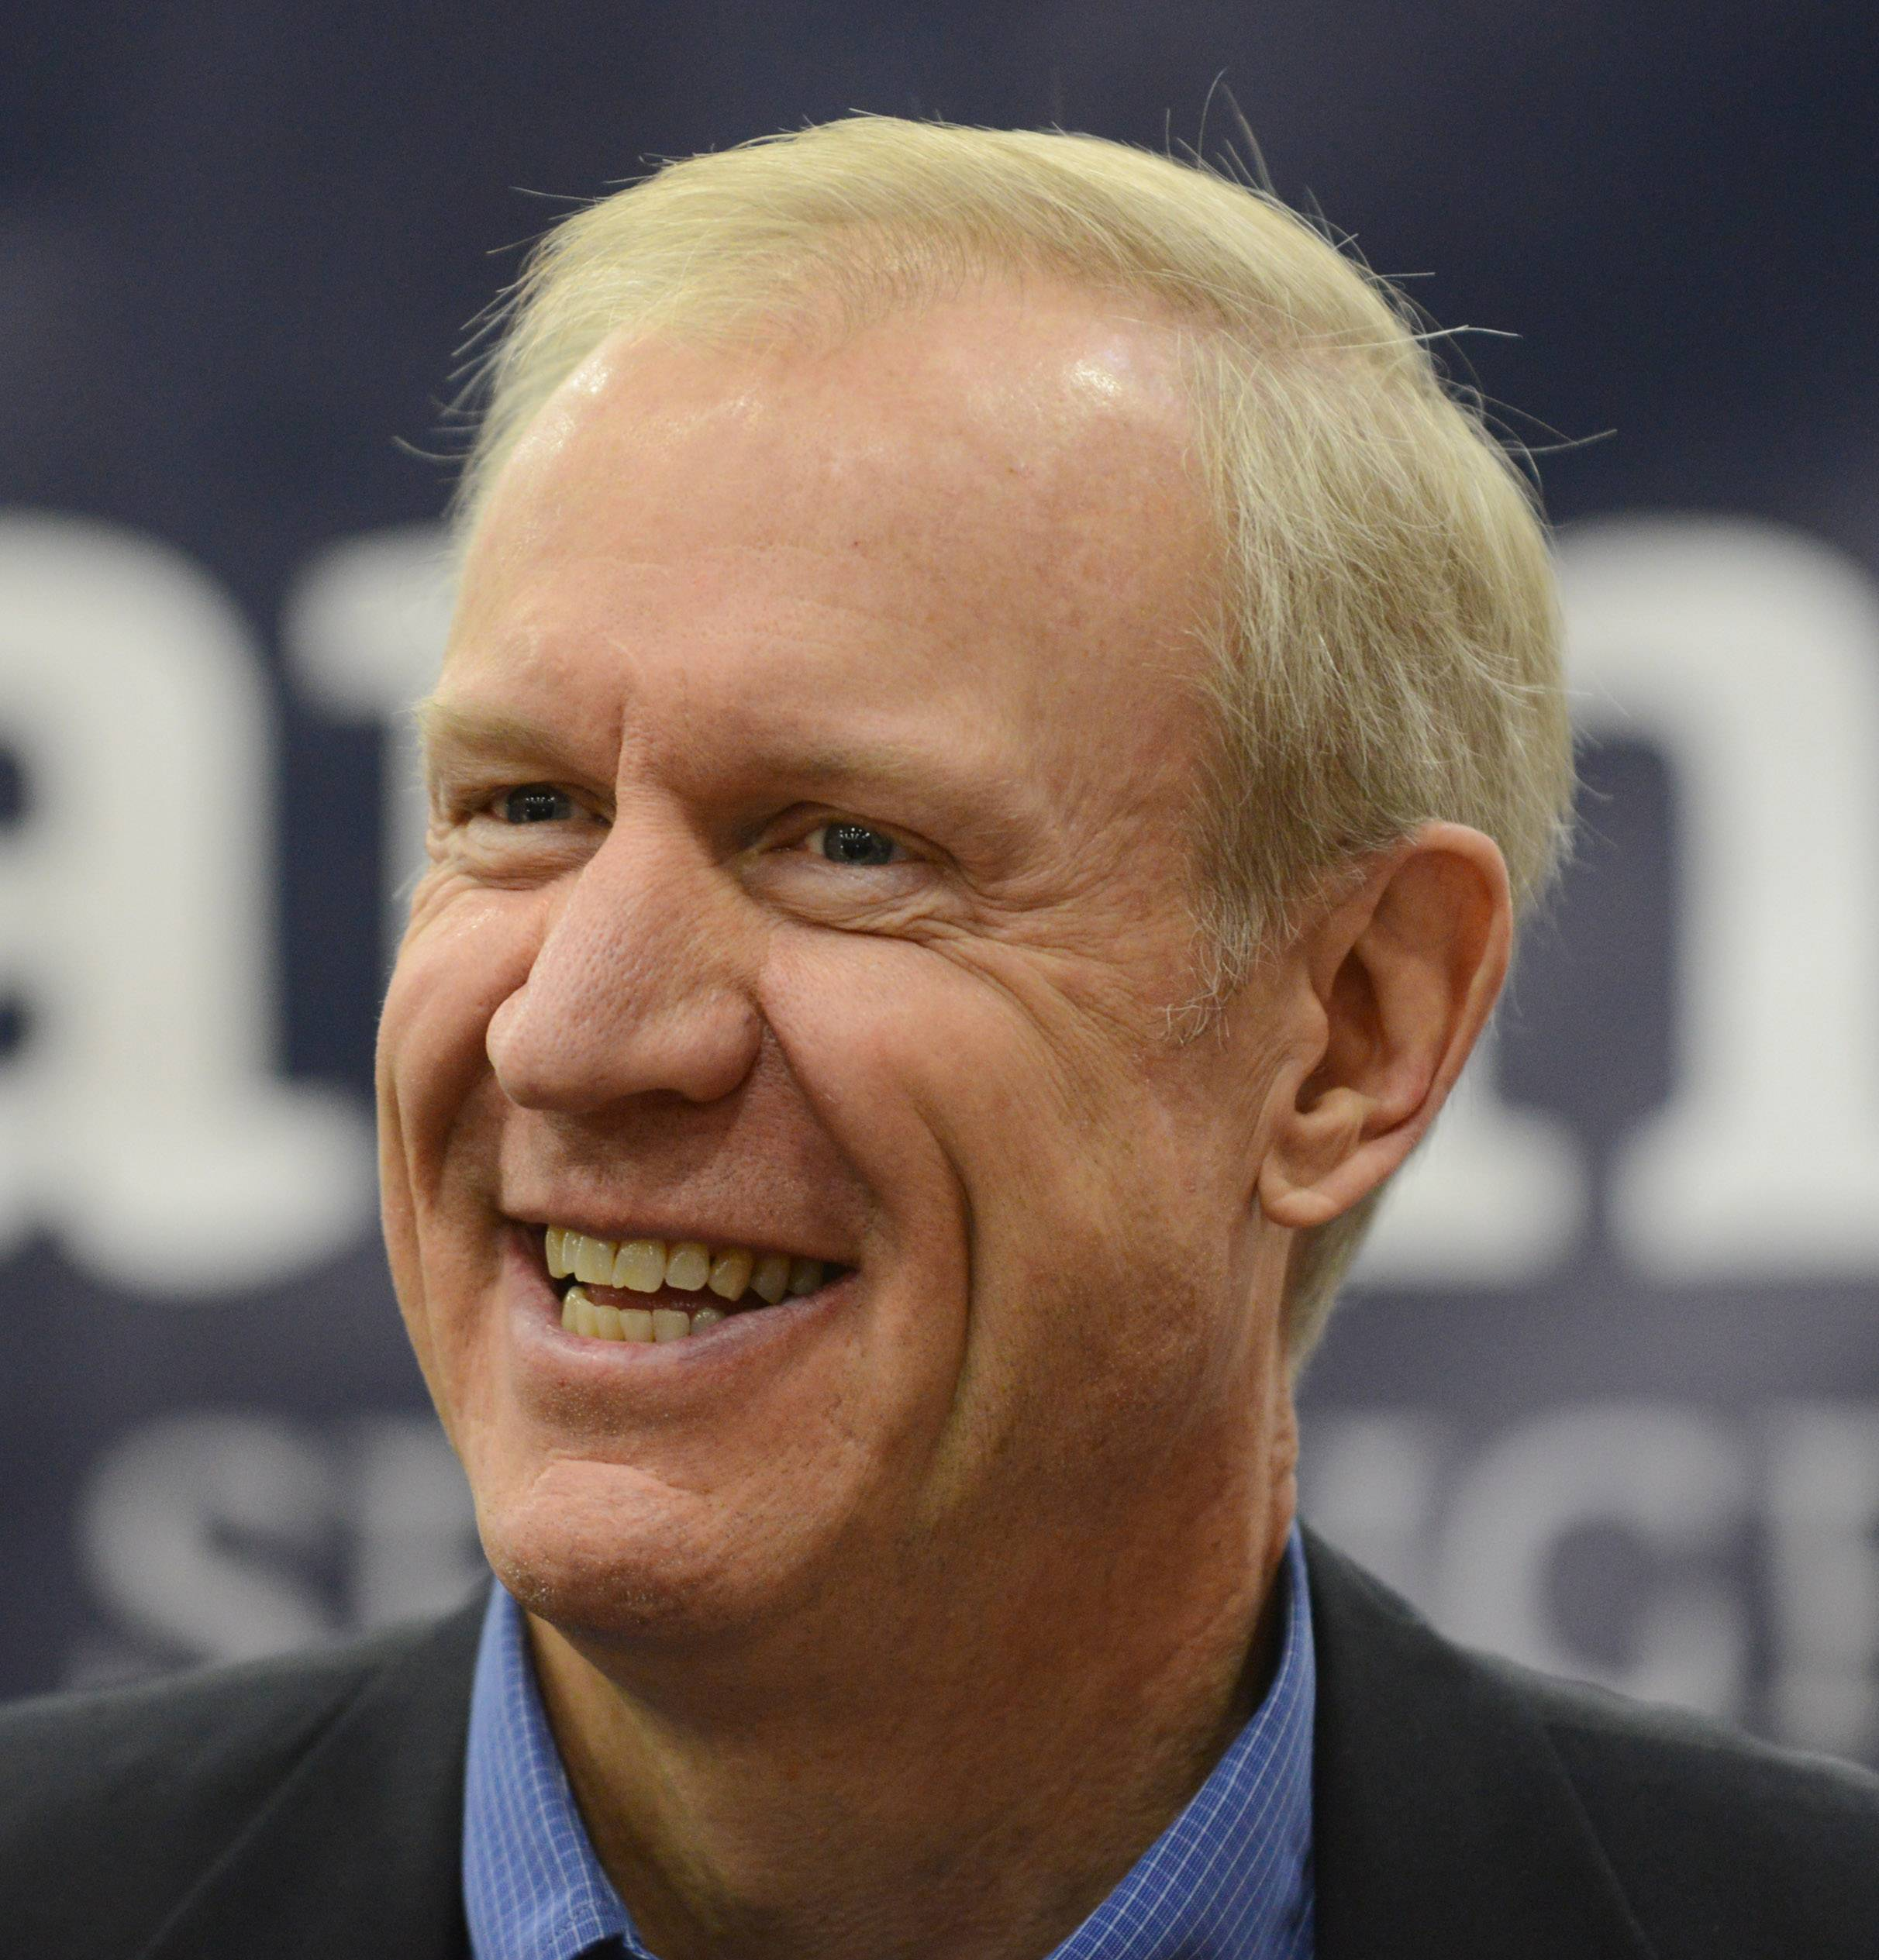 Governor Bruce Rauner will speak to local manufacturers exhibiting at the 2017 Made in Elk Grove Manufacturing & Technology Expo on Tuesday, Oct. 17,